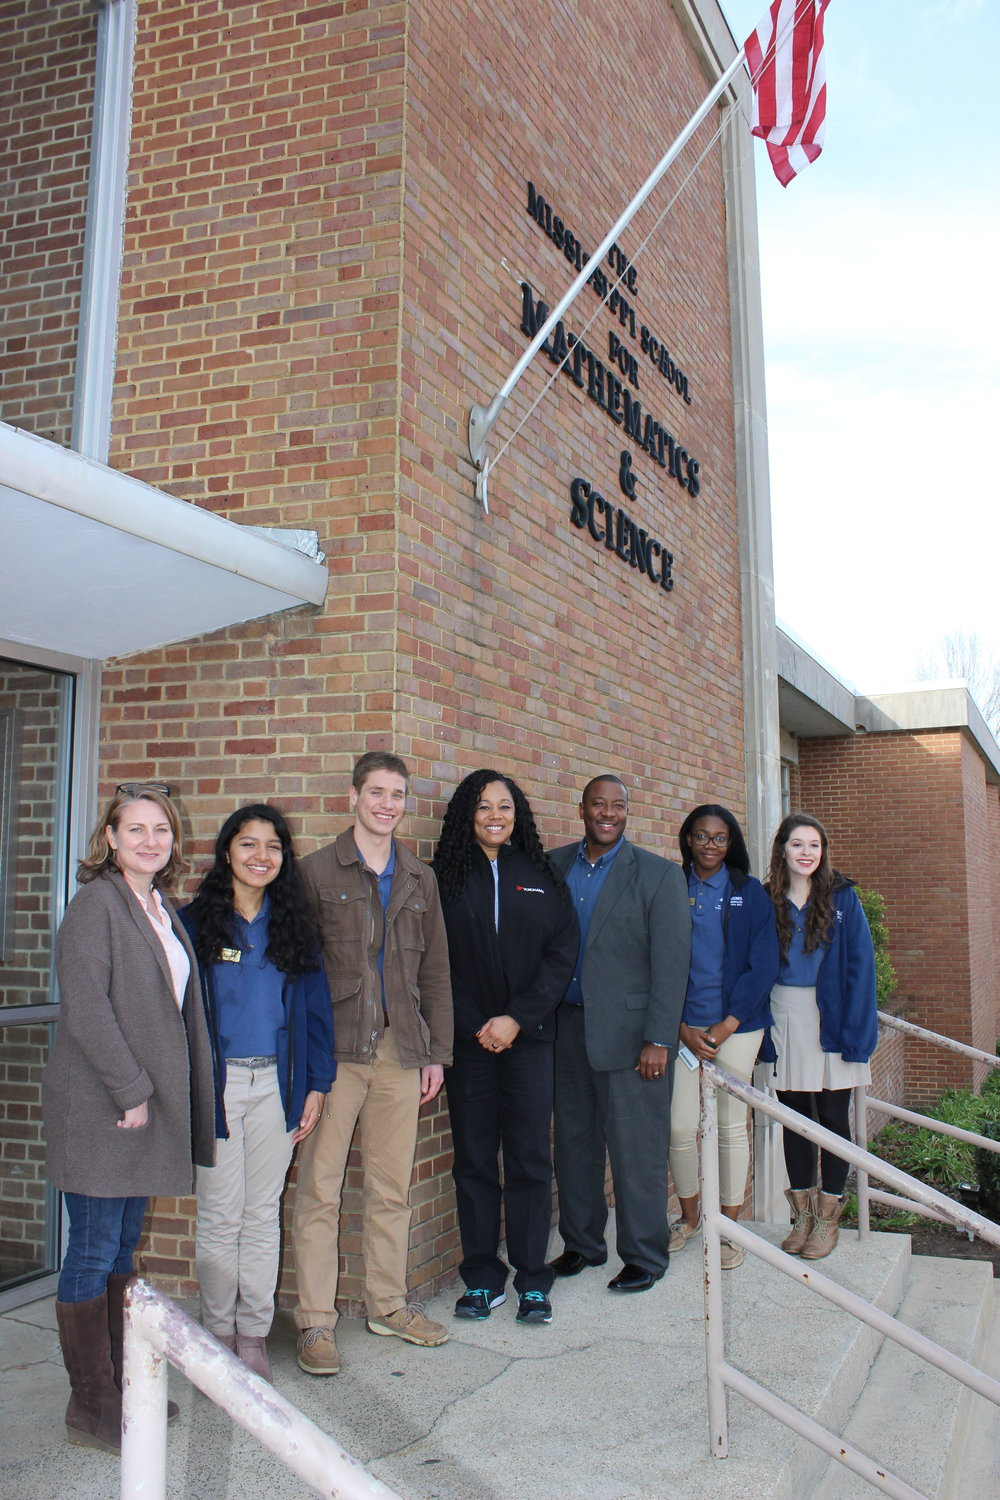 From left: Dr. Heather Hanna, Wrishija Roy, Braeden Foldenhaur, Kebebe Wilson, Dr. Germain McConnell, Chinwe Udemgba, and Claudia Vial.